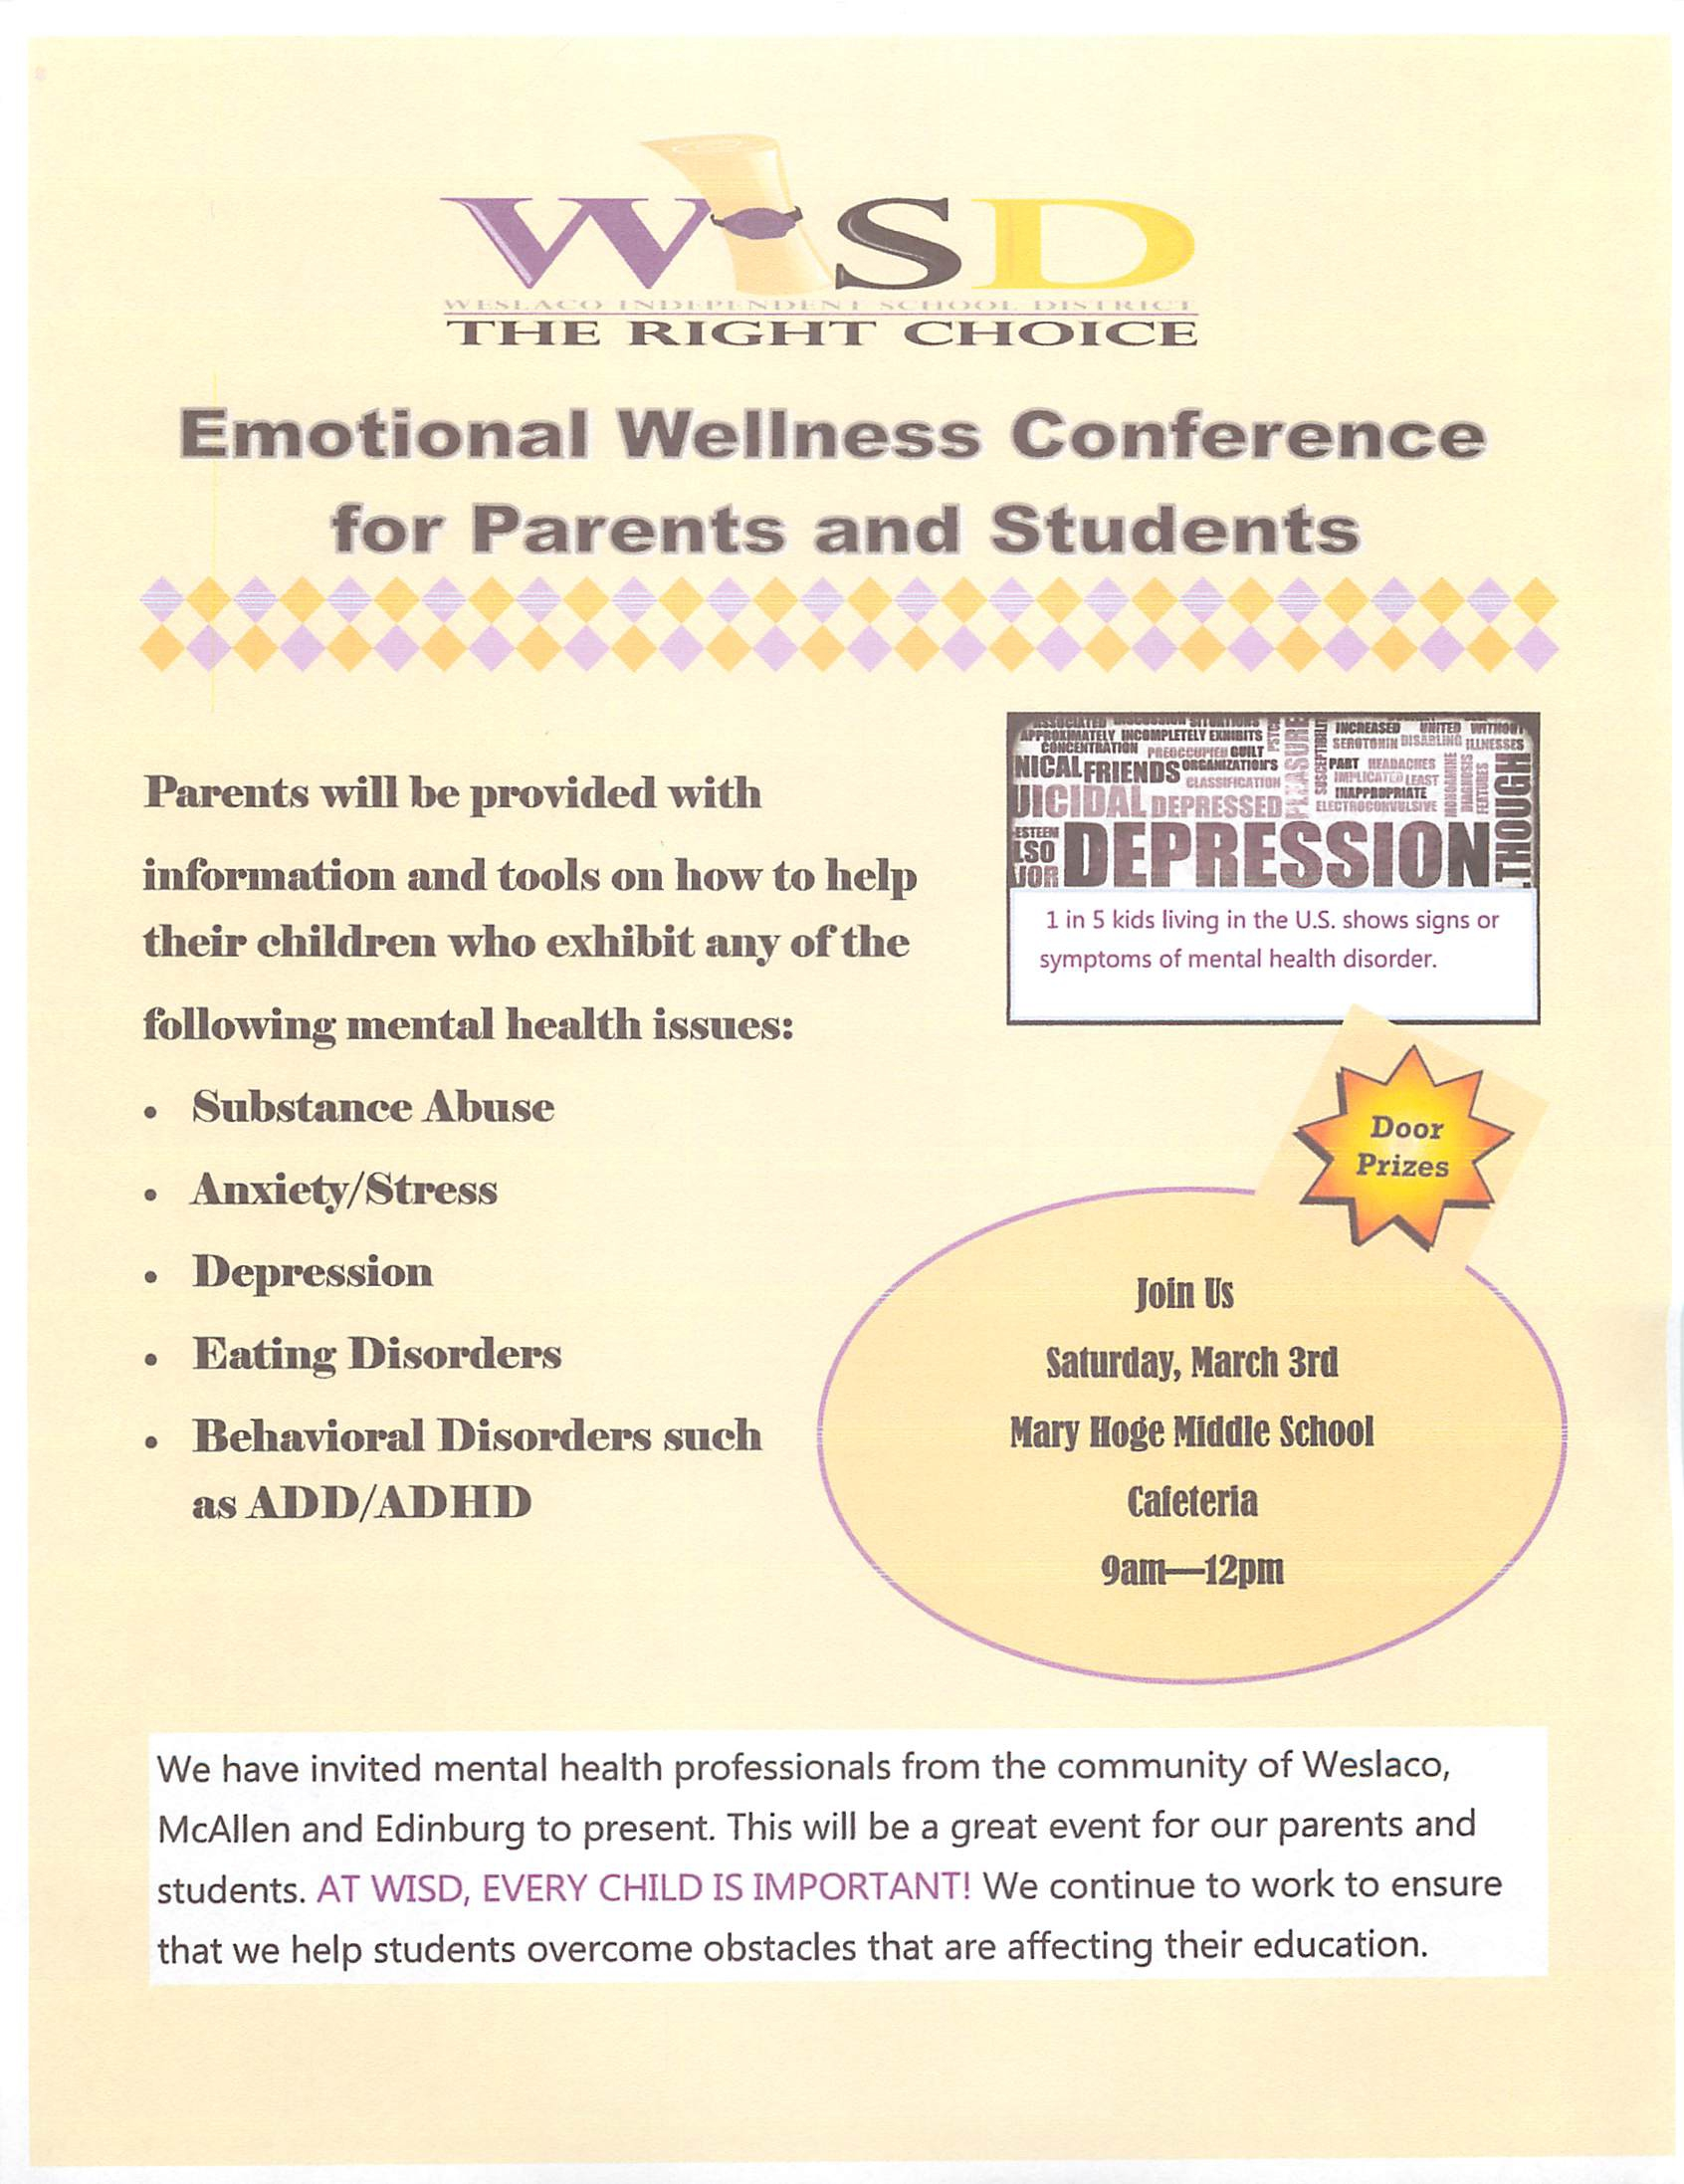 Emotional Wellness Conference